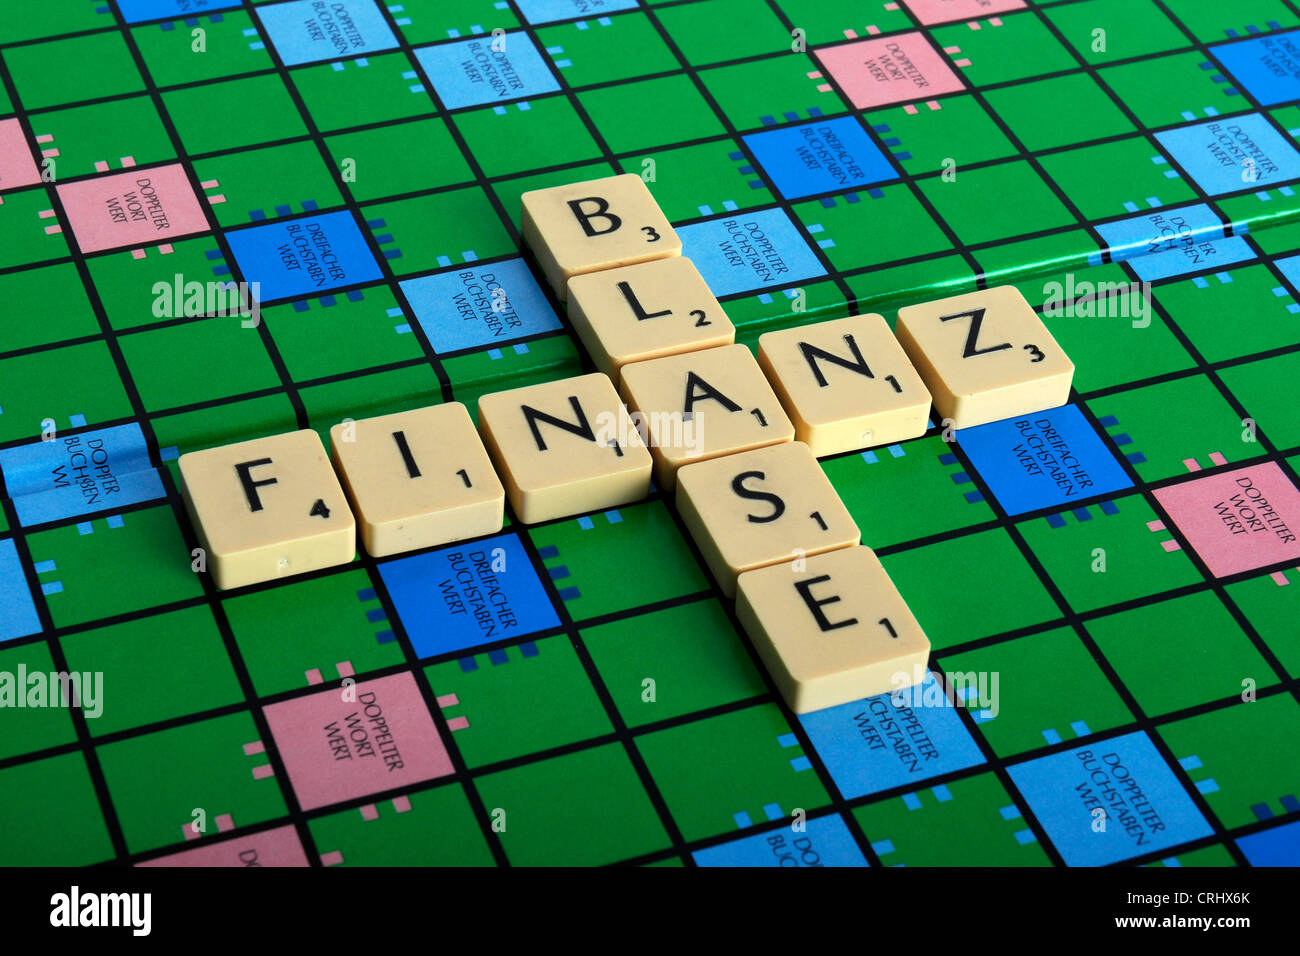 the words 'Finanz' and 'Blase' laid on a Scrabble field - Stock Image